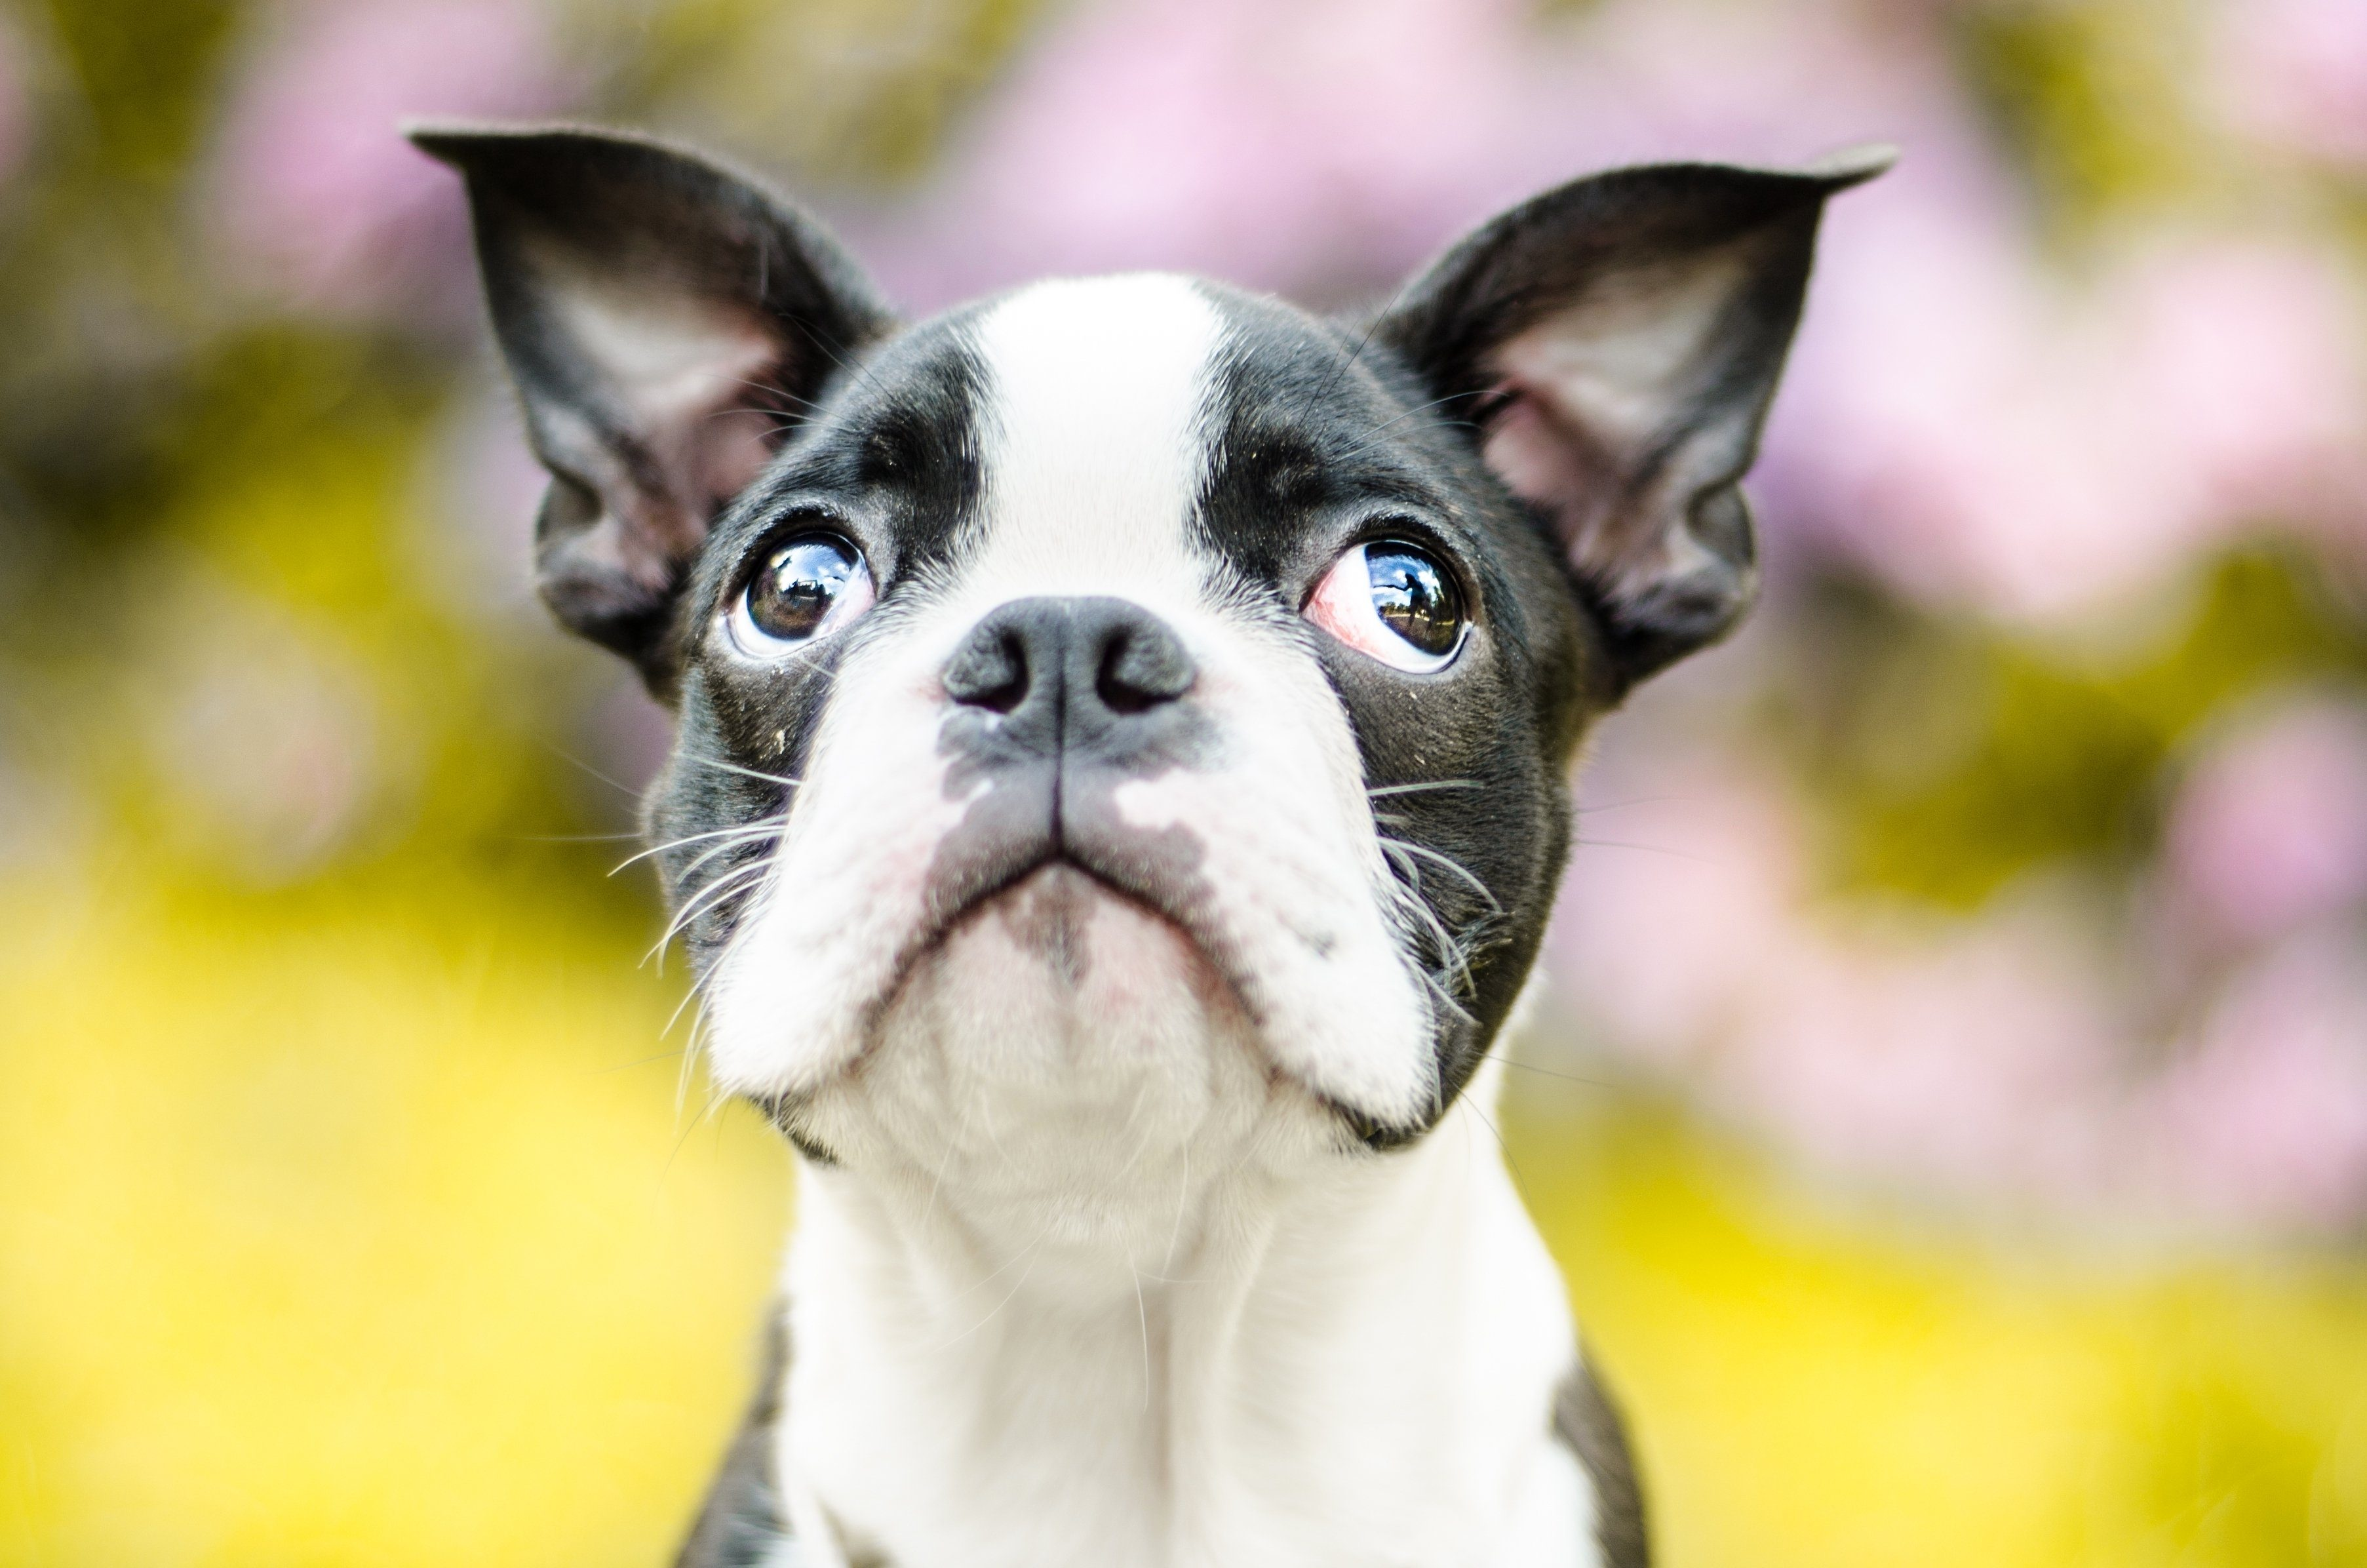 sweet doggy look of squinting focused black and light brown puppy male boston terrier dog looking up summer in park sunny day